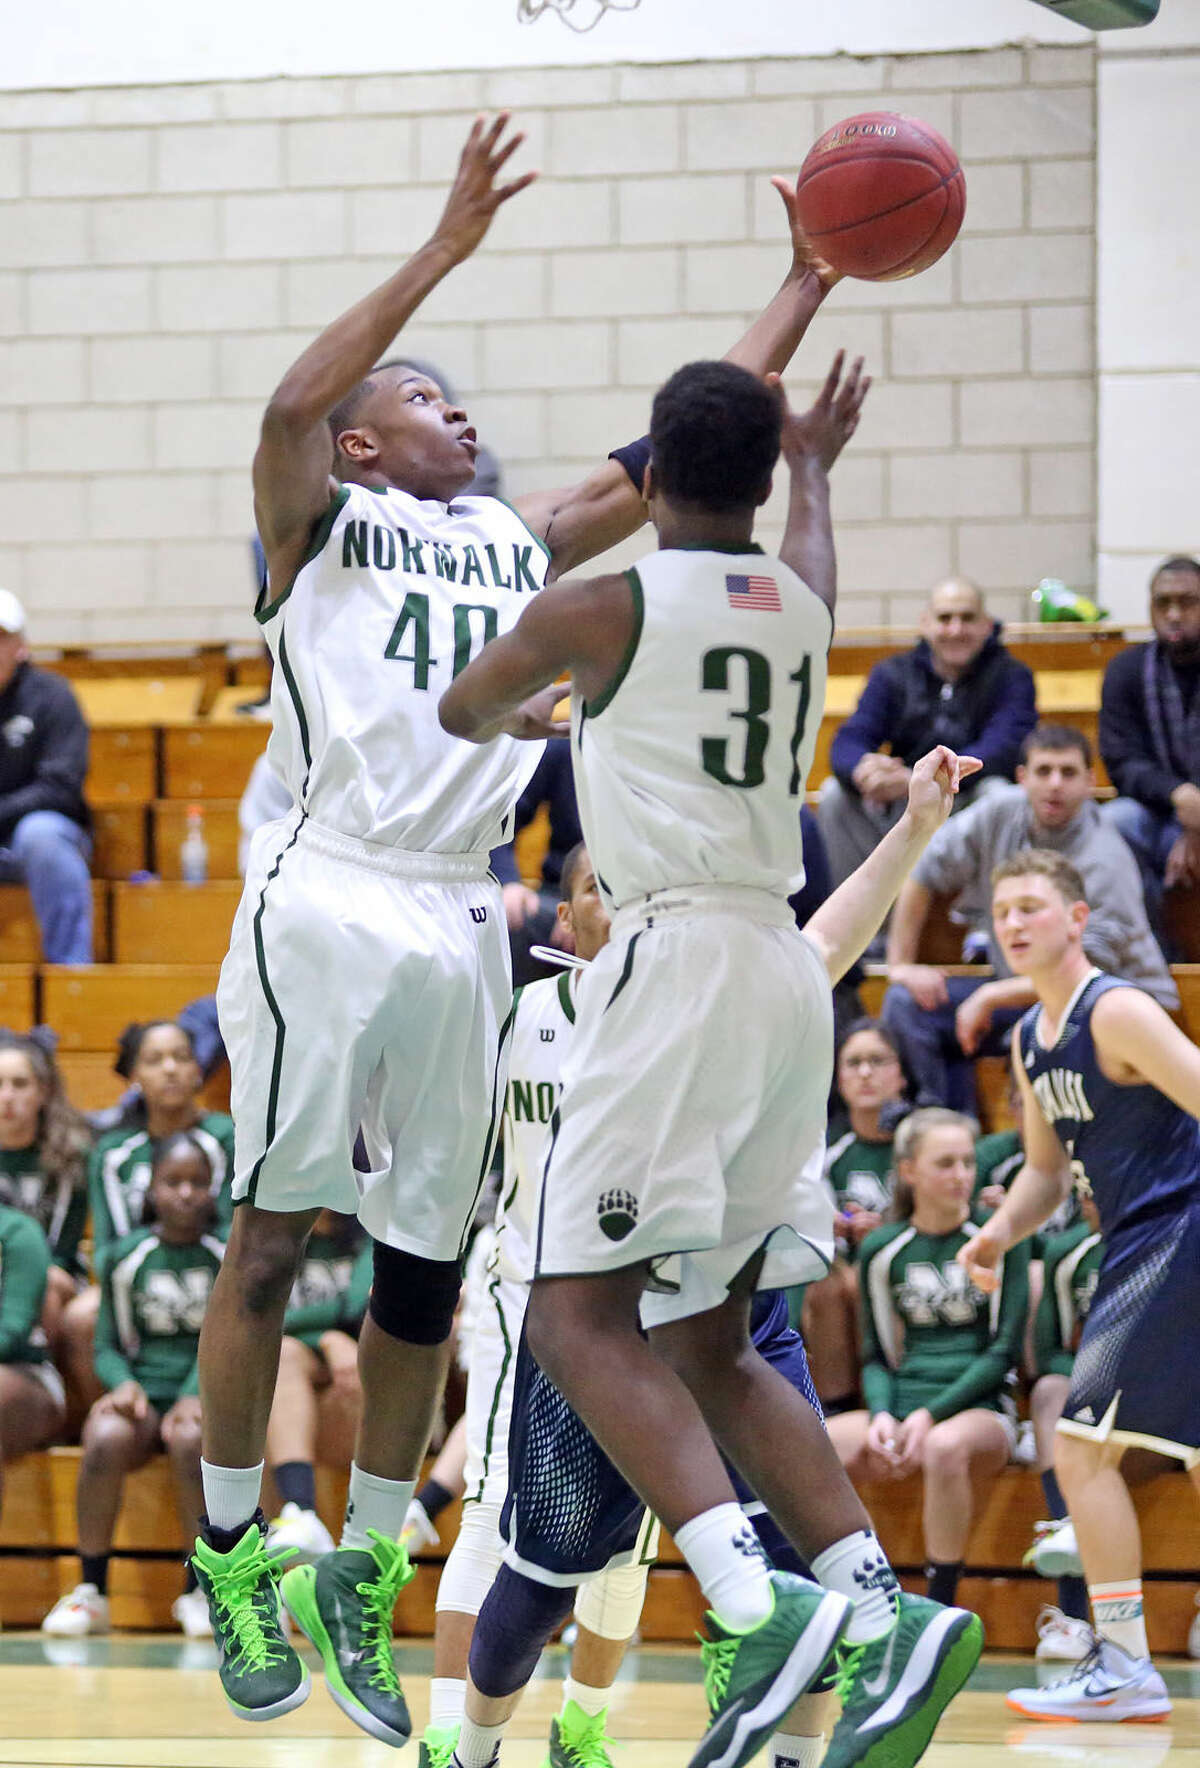 Norwalk's #40, Jakari Gainer, takes a shot during a home game against Staples Monday evening. Hour Photo / Danielle Calloway